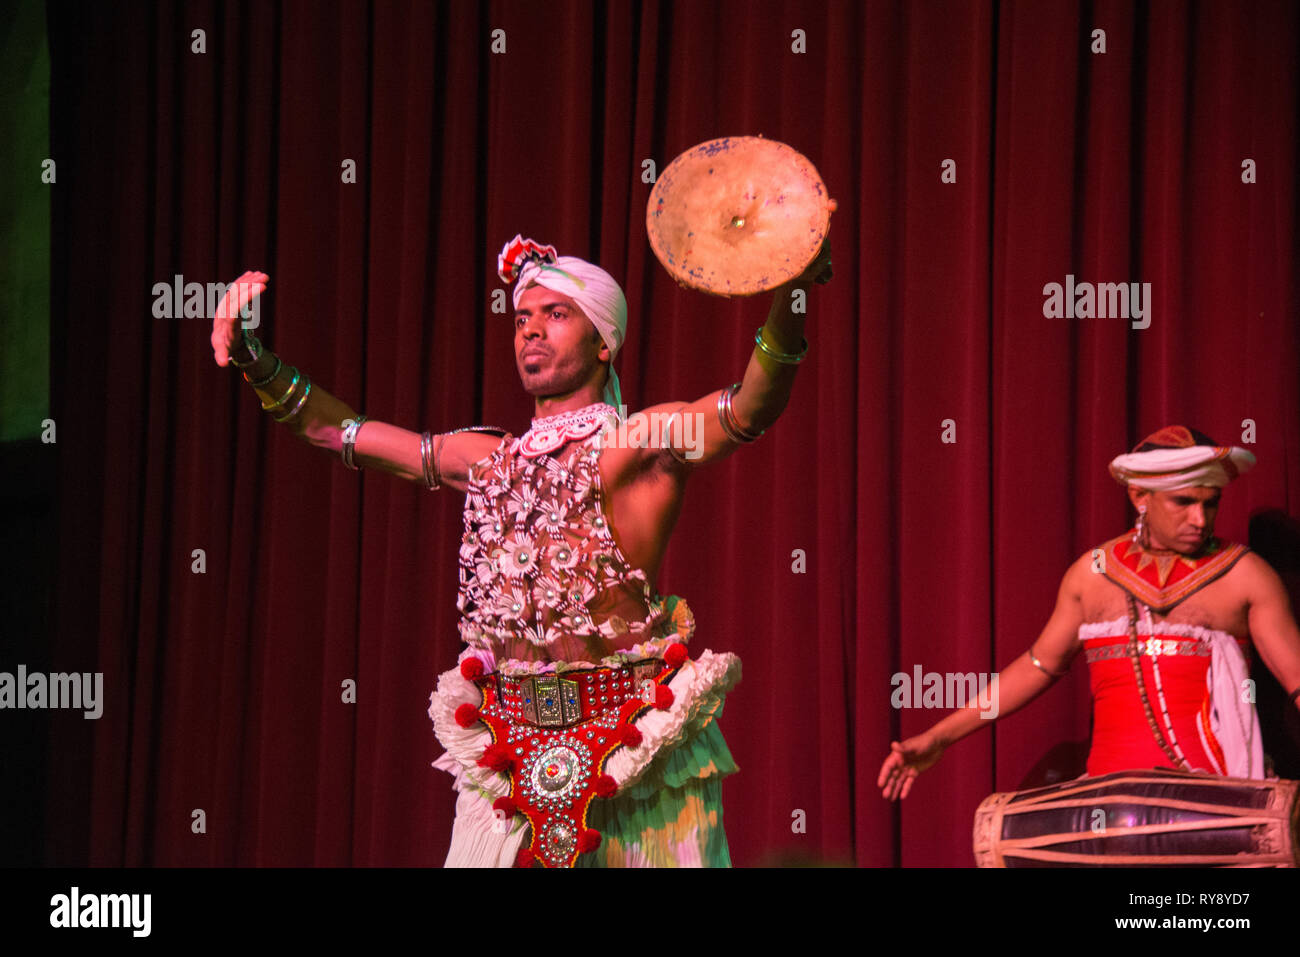 Traditional Costumes Sri Lanka High Resolution Stock Photography And Images Alamy